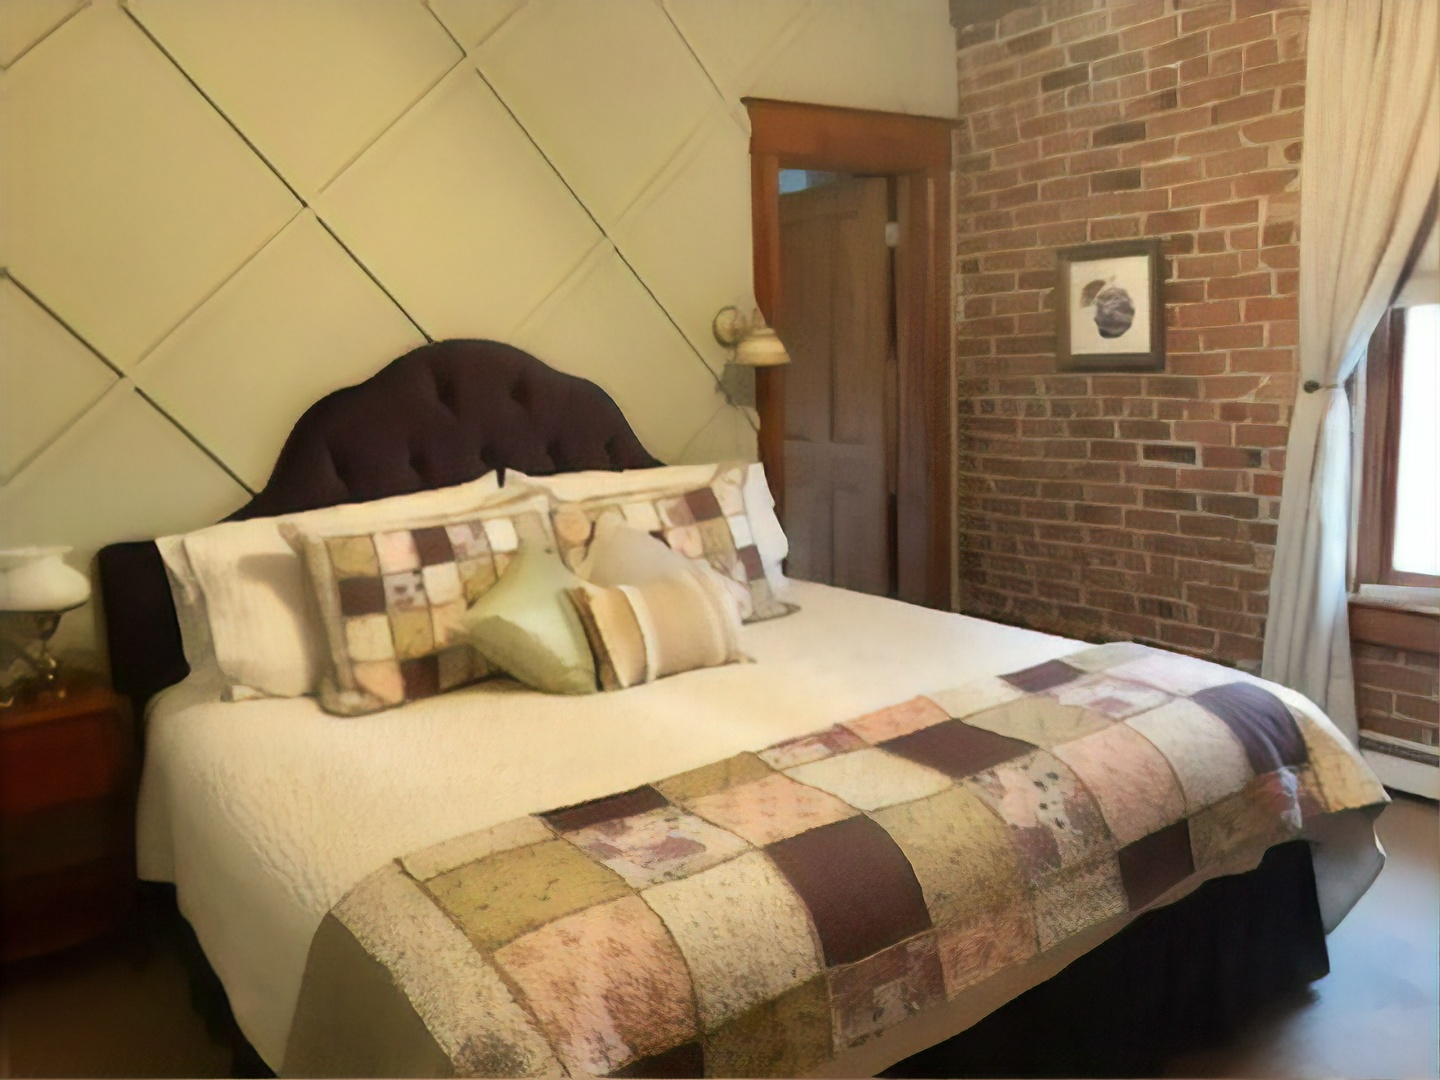 A bedroom with a large bed in a room at Bross Hotel Bed & Breakfast.